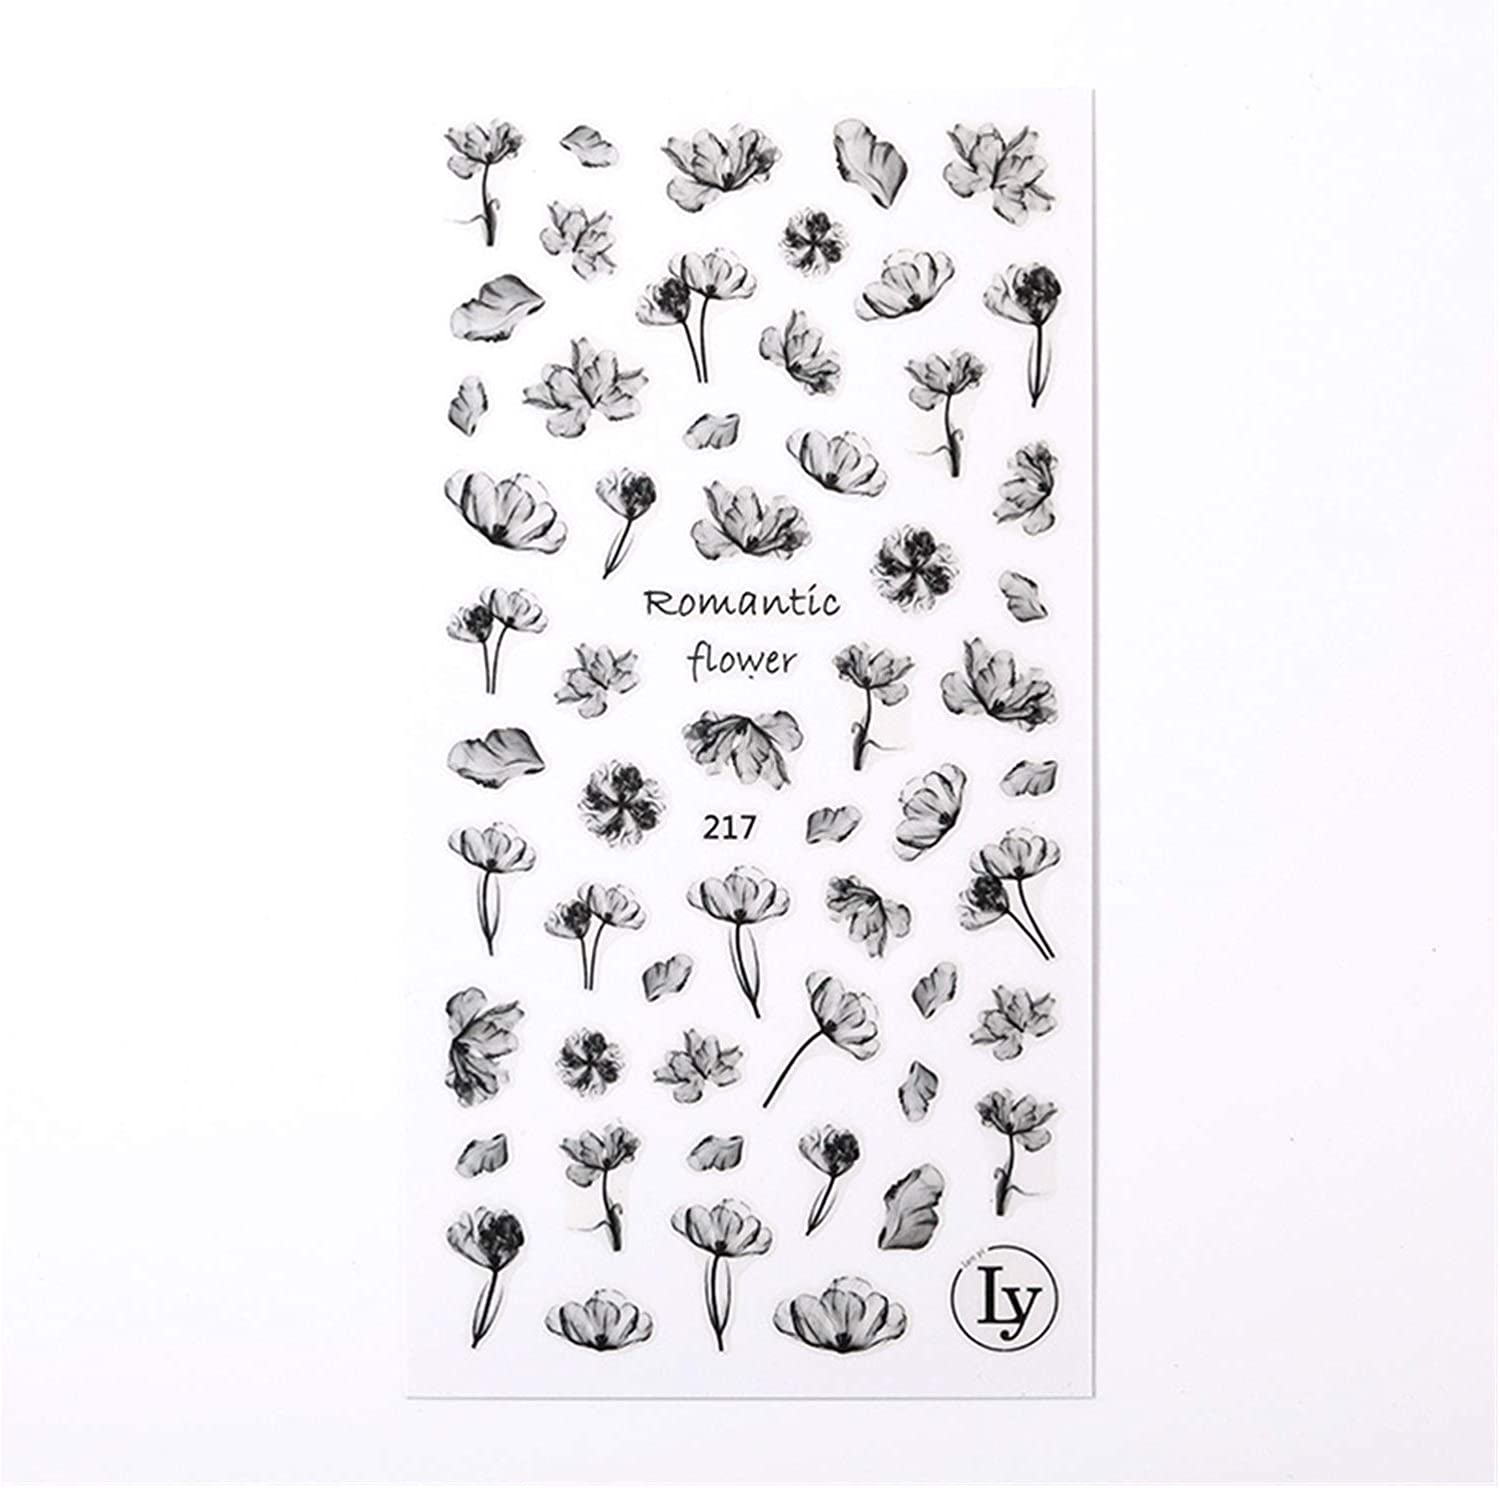 JIANGFBH Nail Sticker 1 Sheet Black S Art OFFicial shop Our shop most popular 3D White Stickers